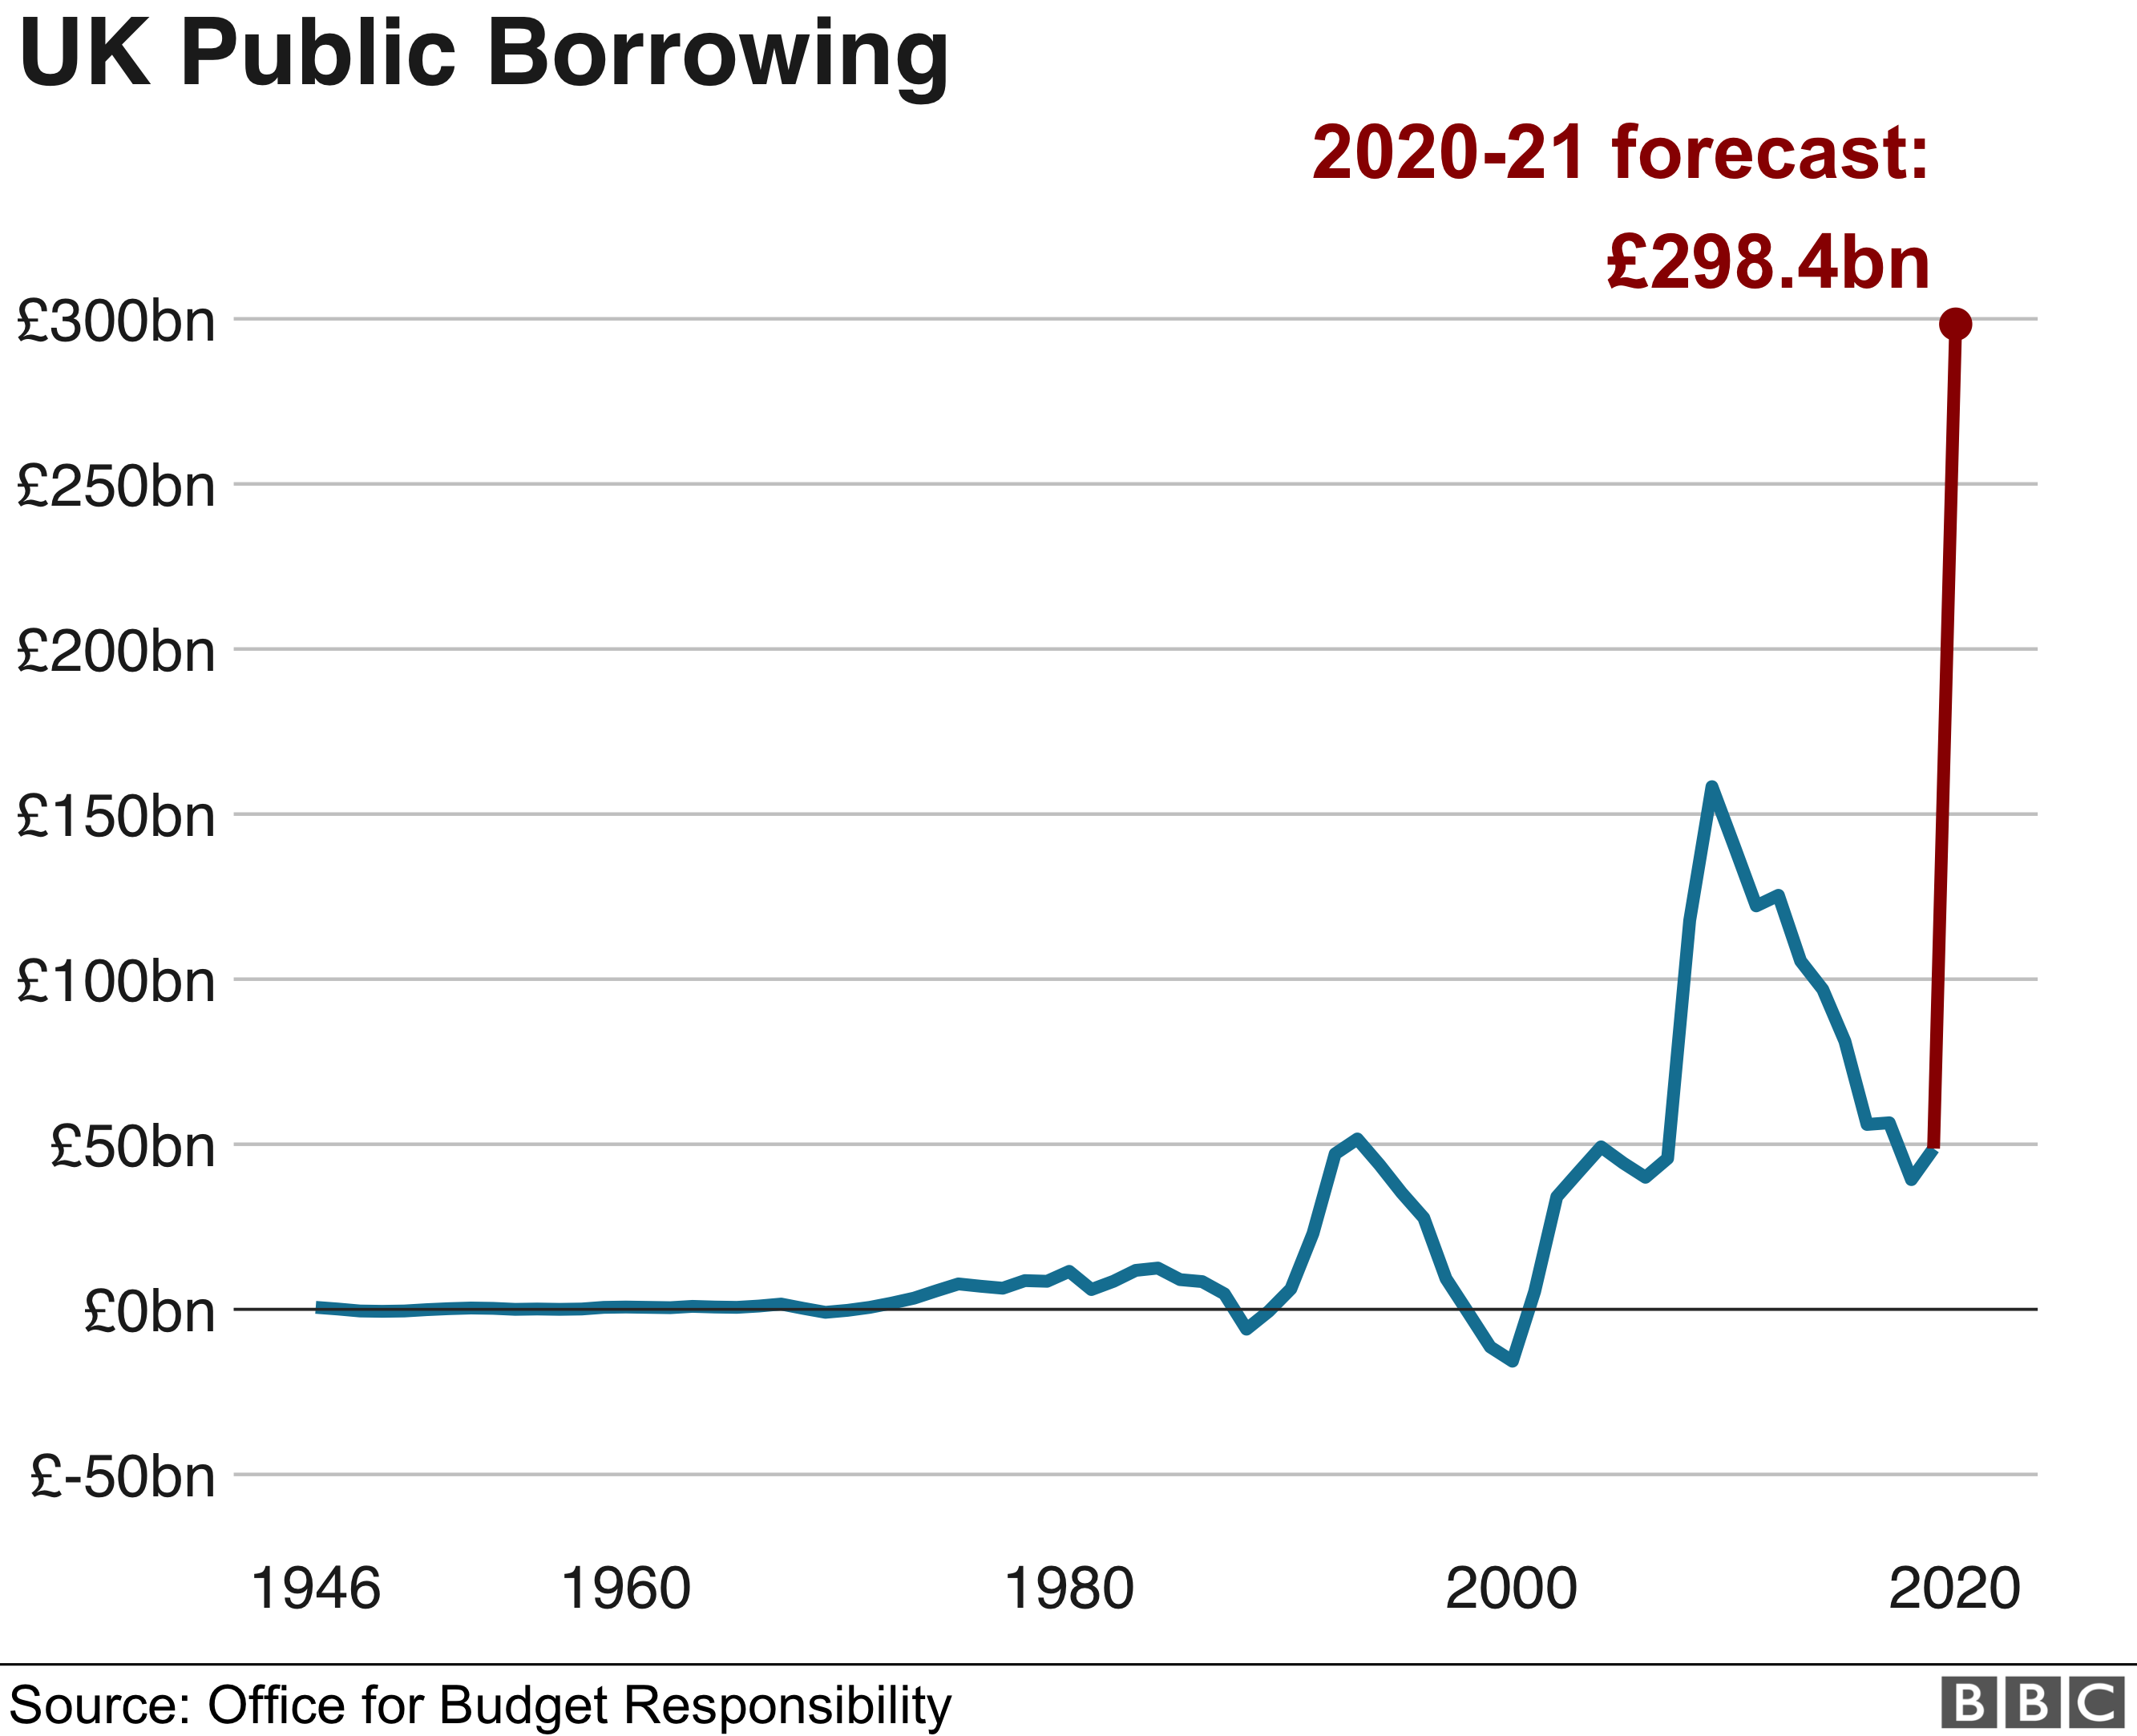 Chart showing UK public borrowing over the last 75 years